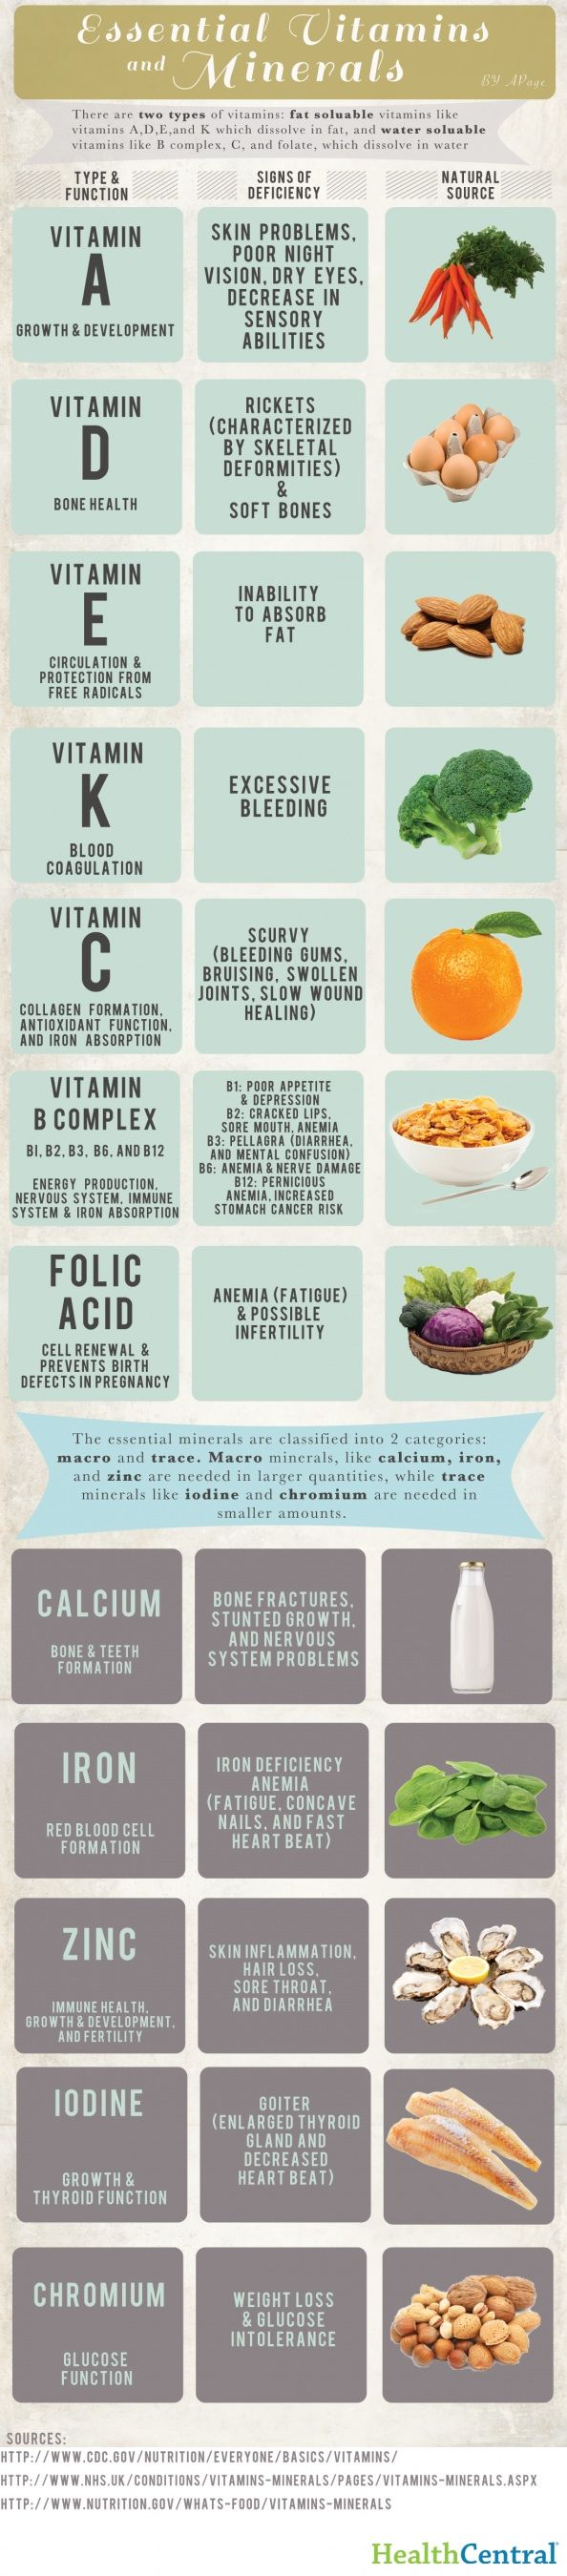 Essential Minerals and Vitamins #health #vitamins #infographic